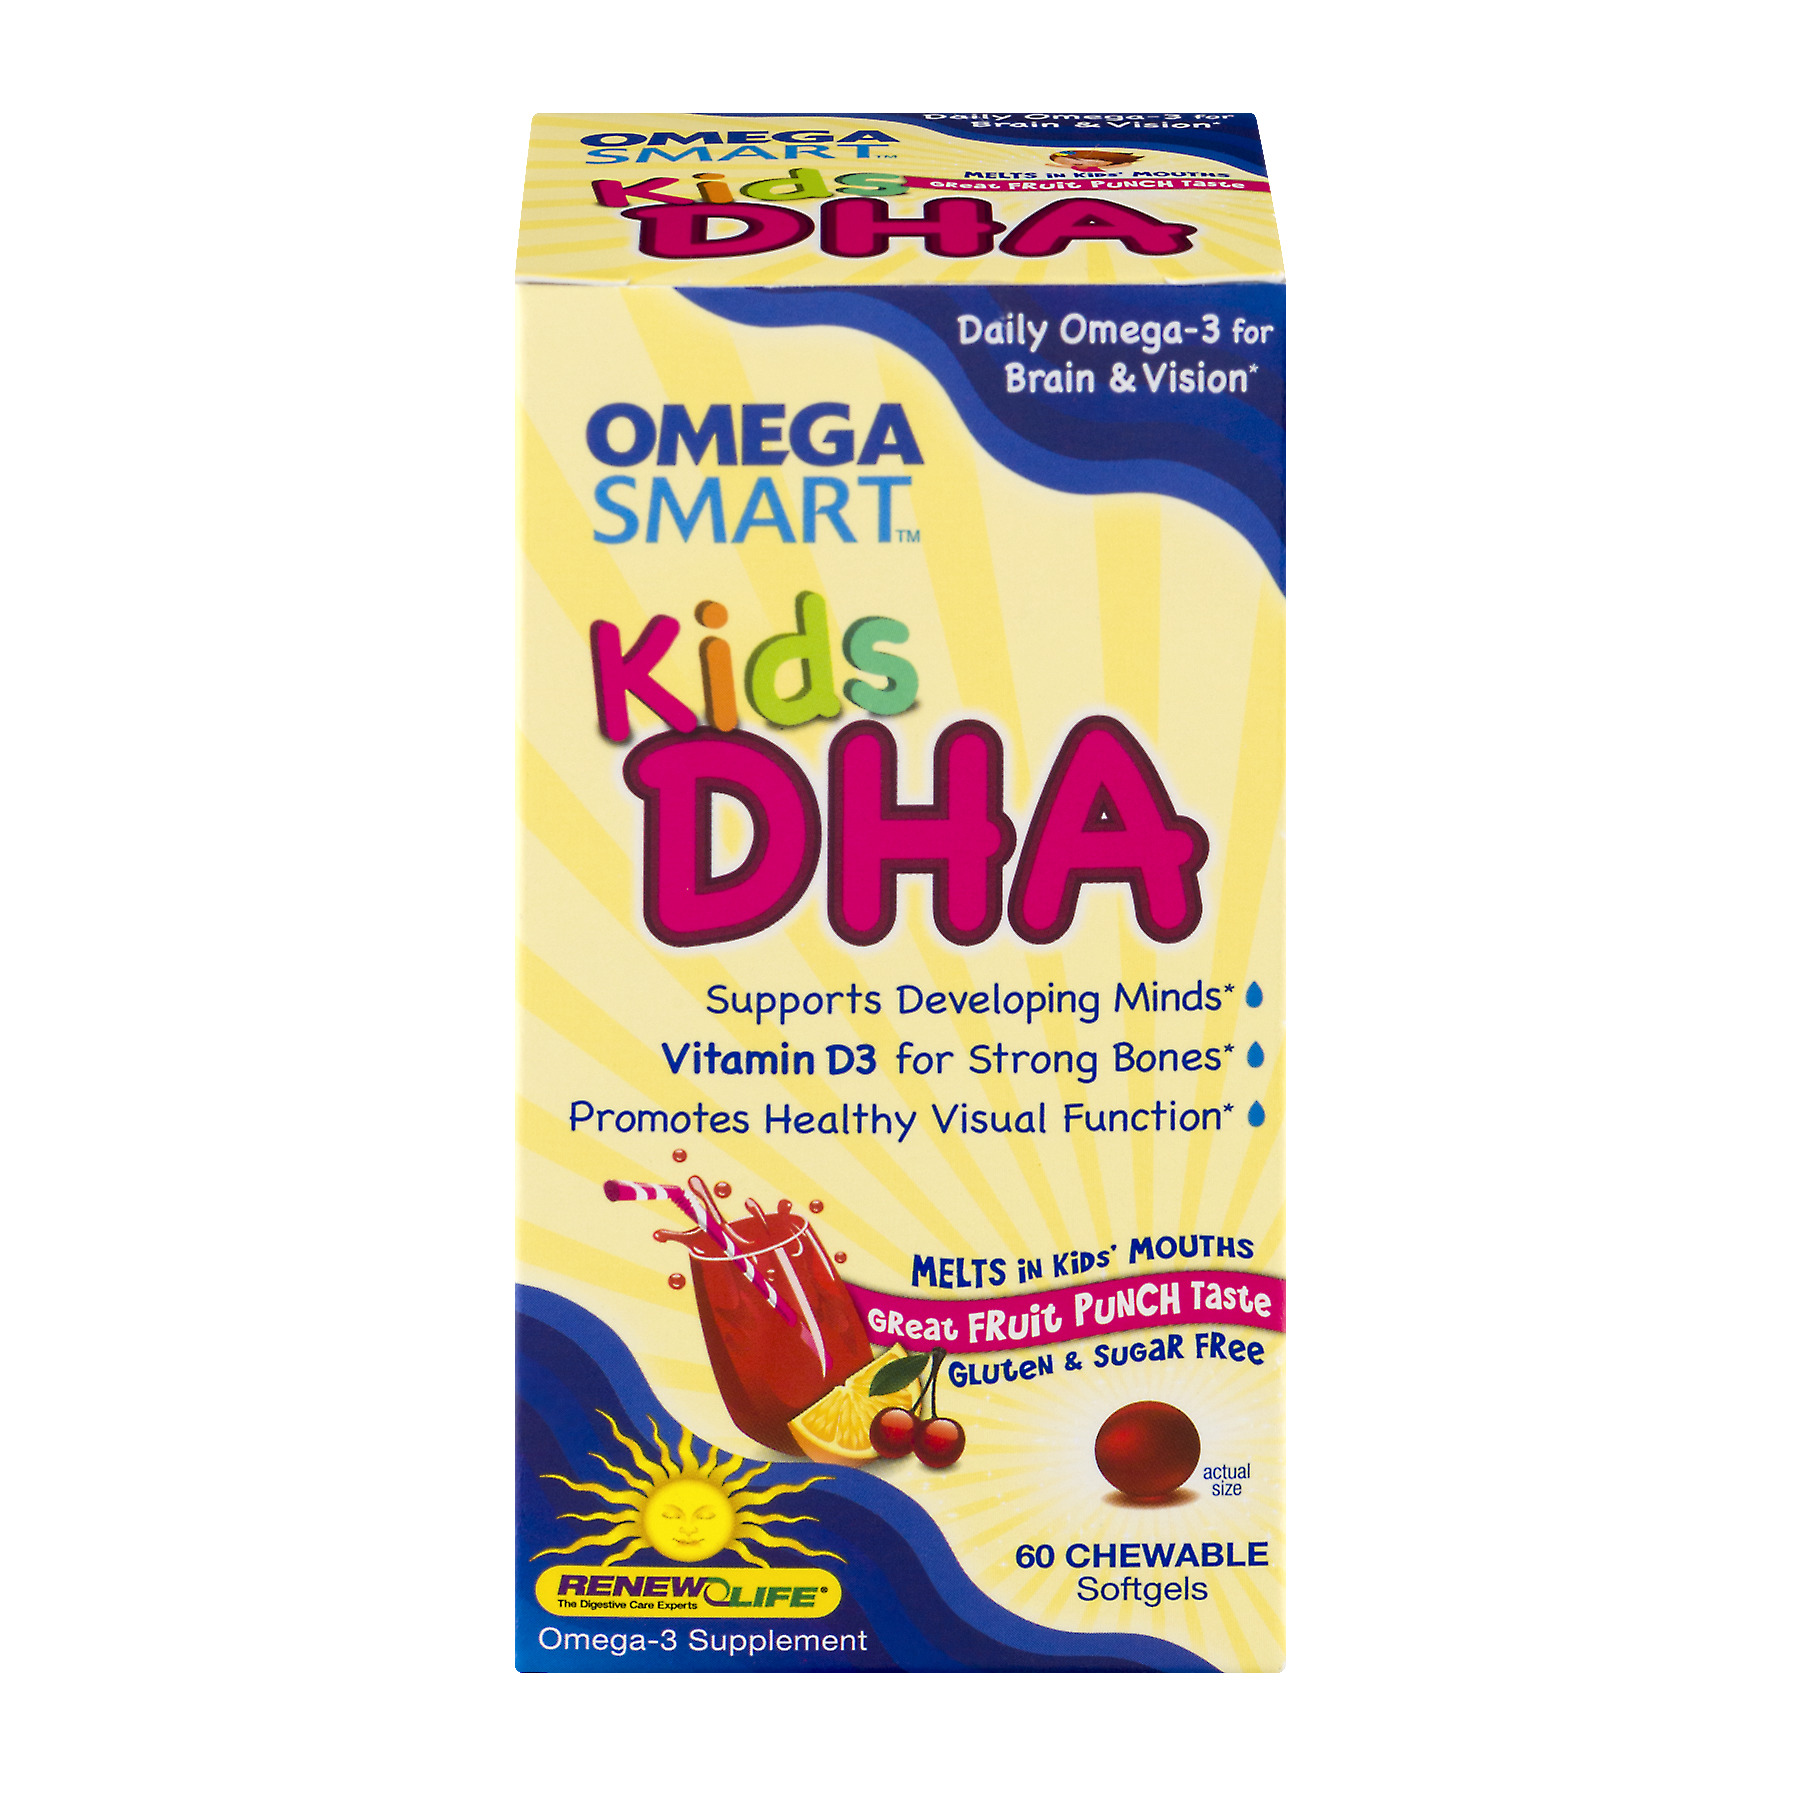 Renew Life Omega Smart Kids DHA Chewable Softgels Fruit Punch - 60 CT